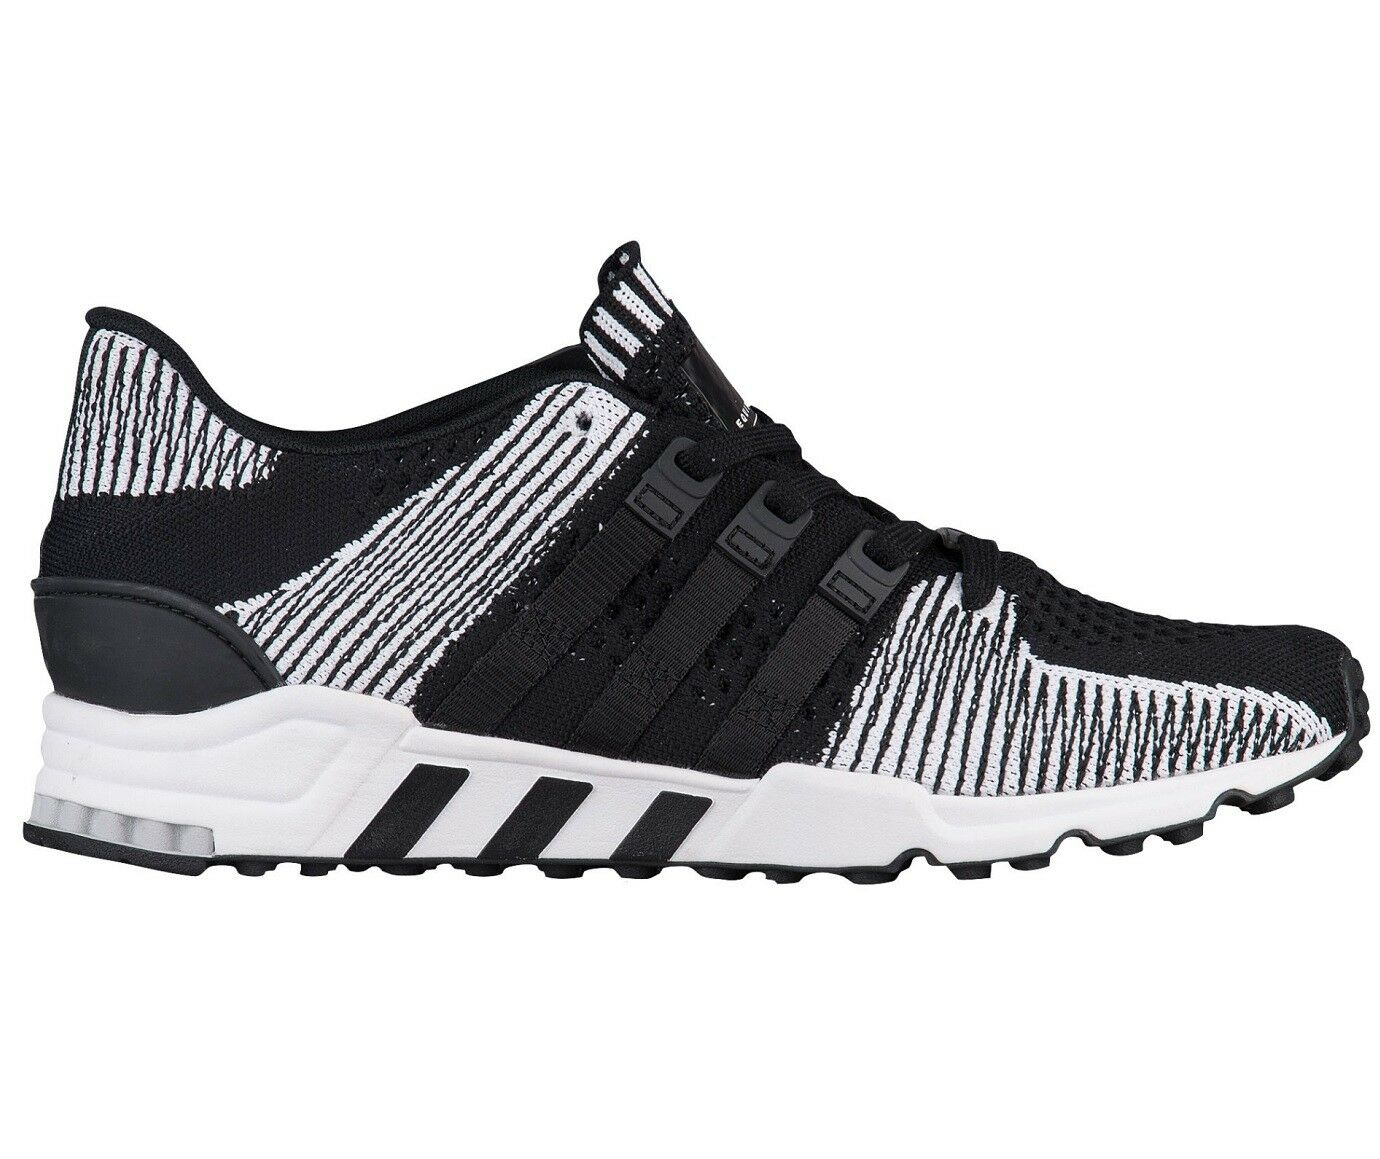 46595f5c4f6970 Adidas EQT Support RF Primeknit Mens BY9689 Black White Running Running  Running Shoes Size 11.5 a58d8e